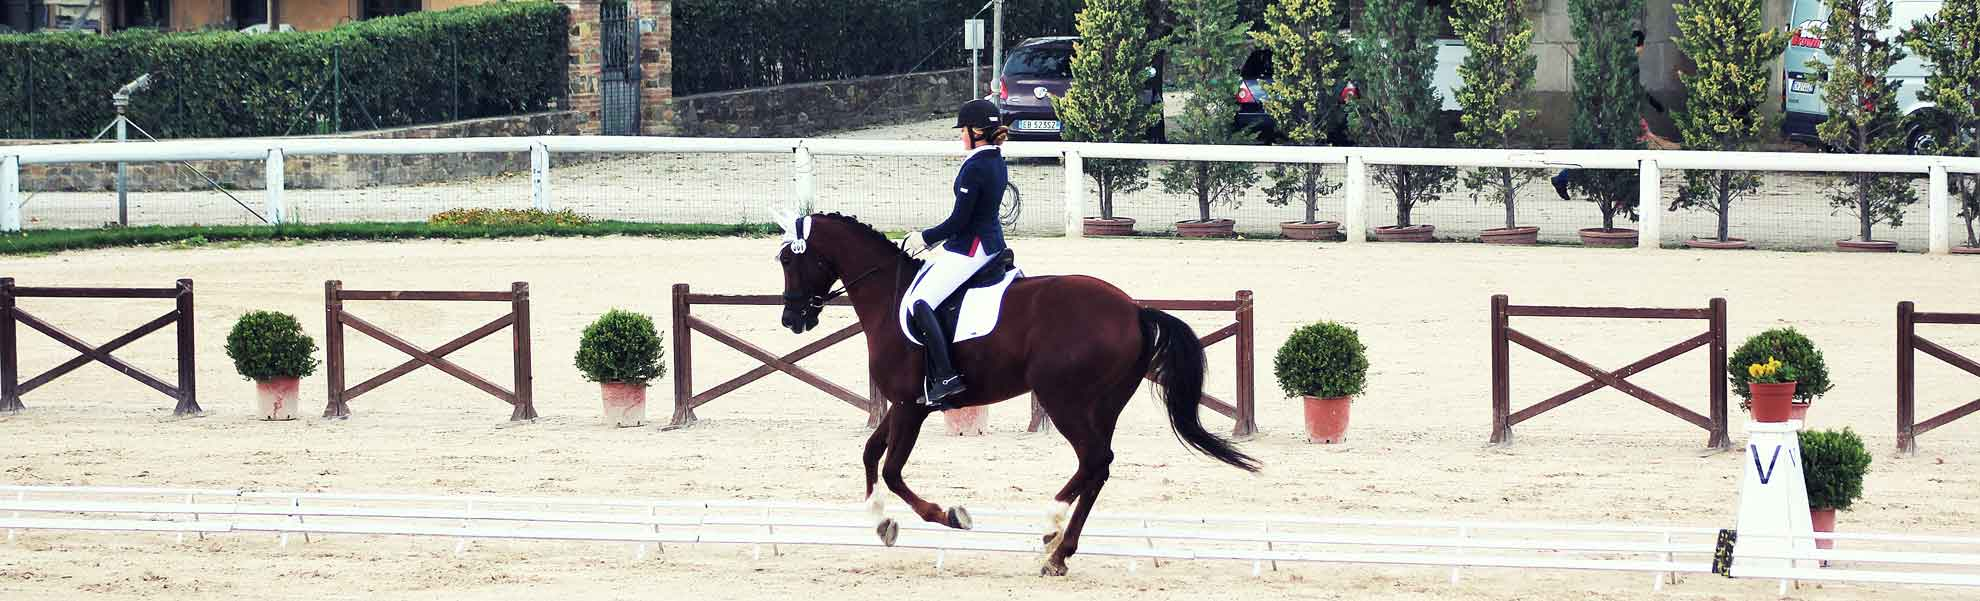 Dressage event sponsored by the company